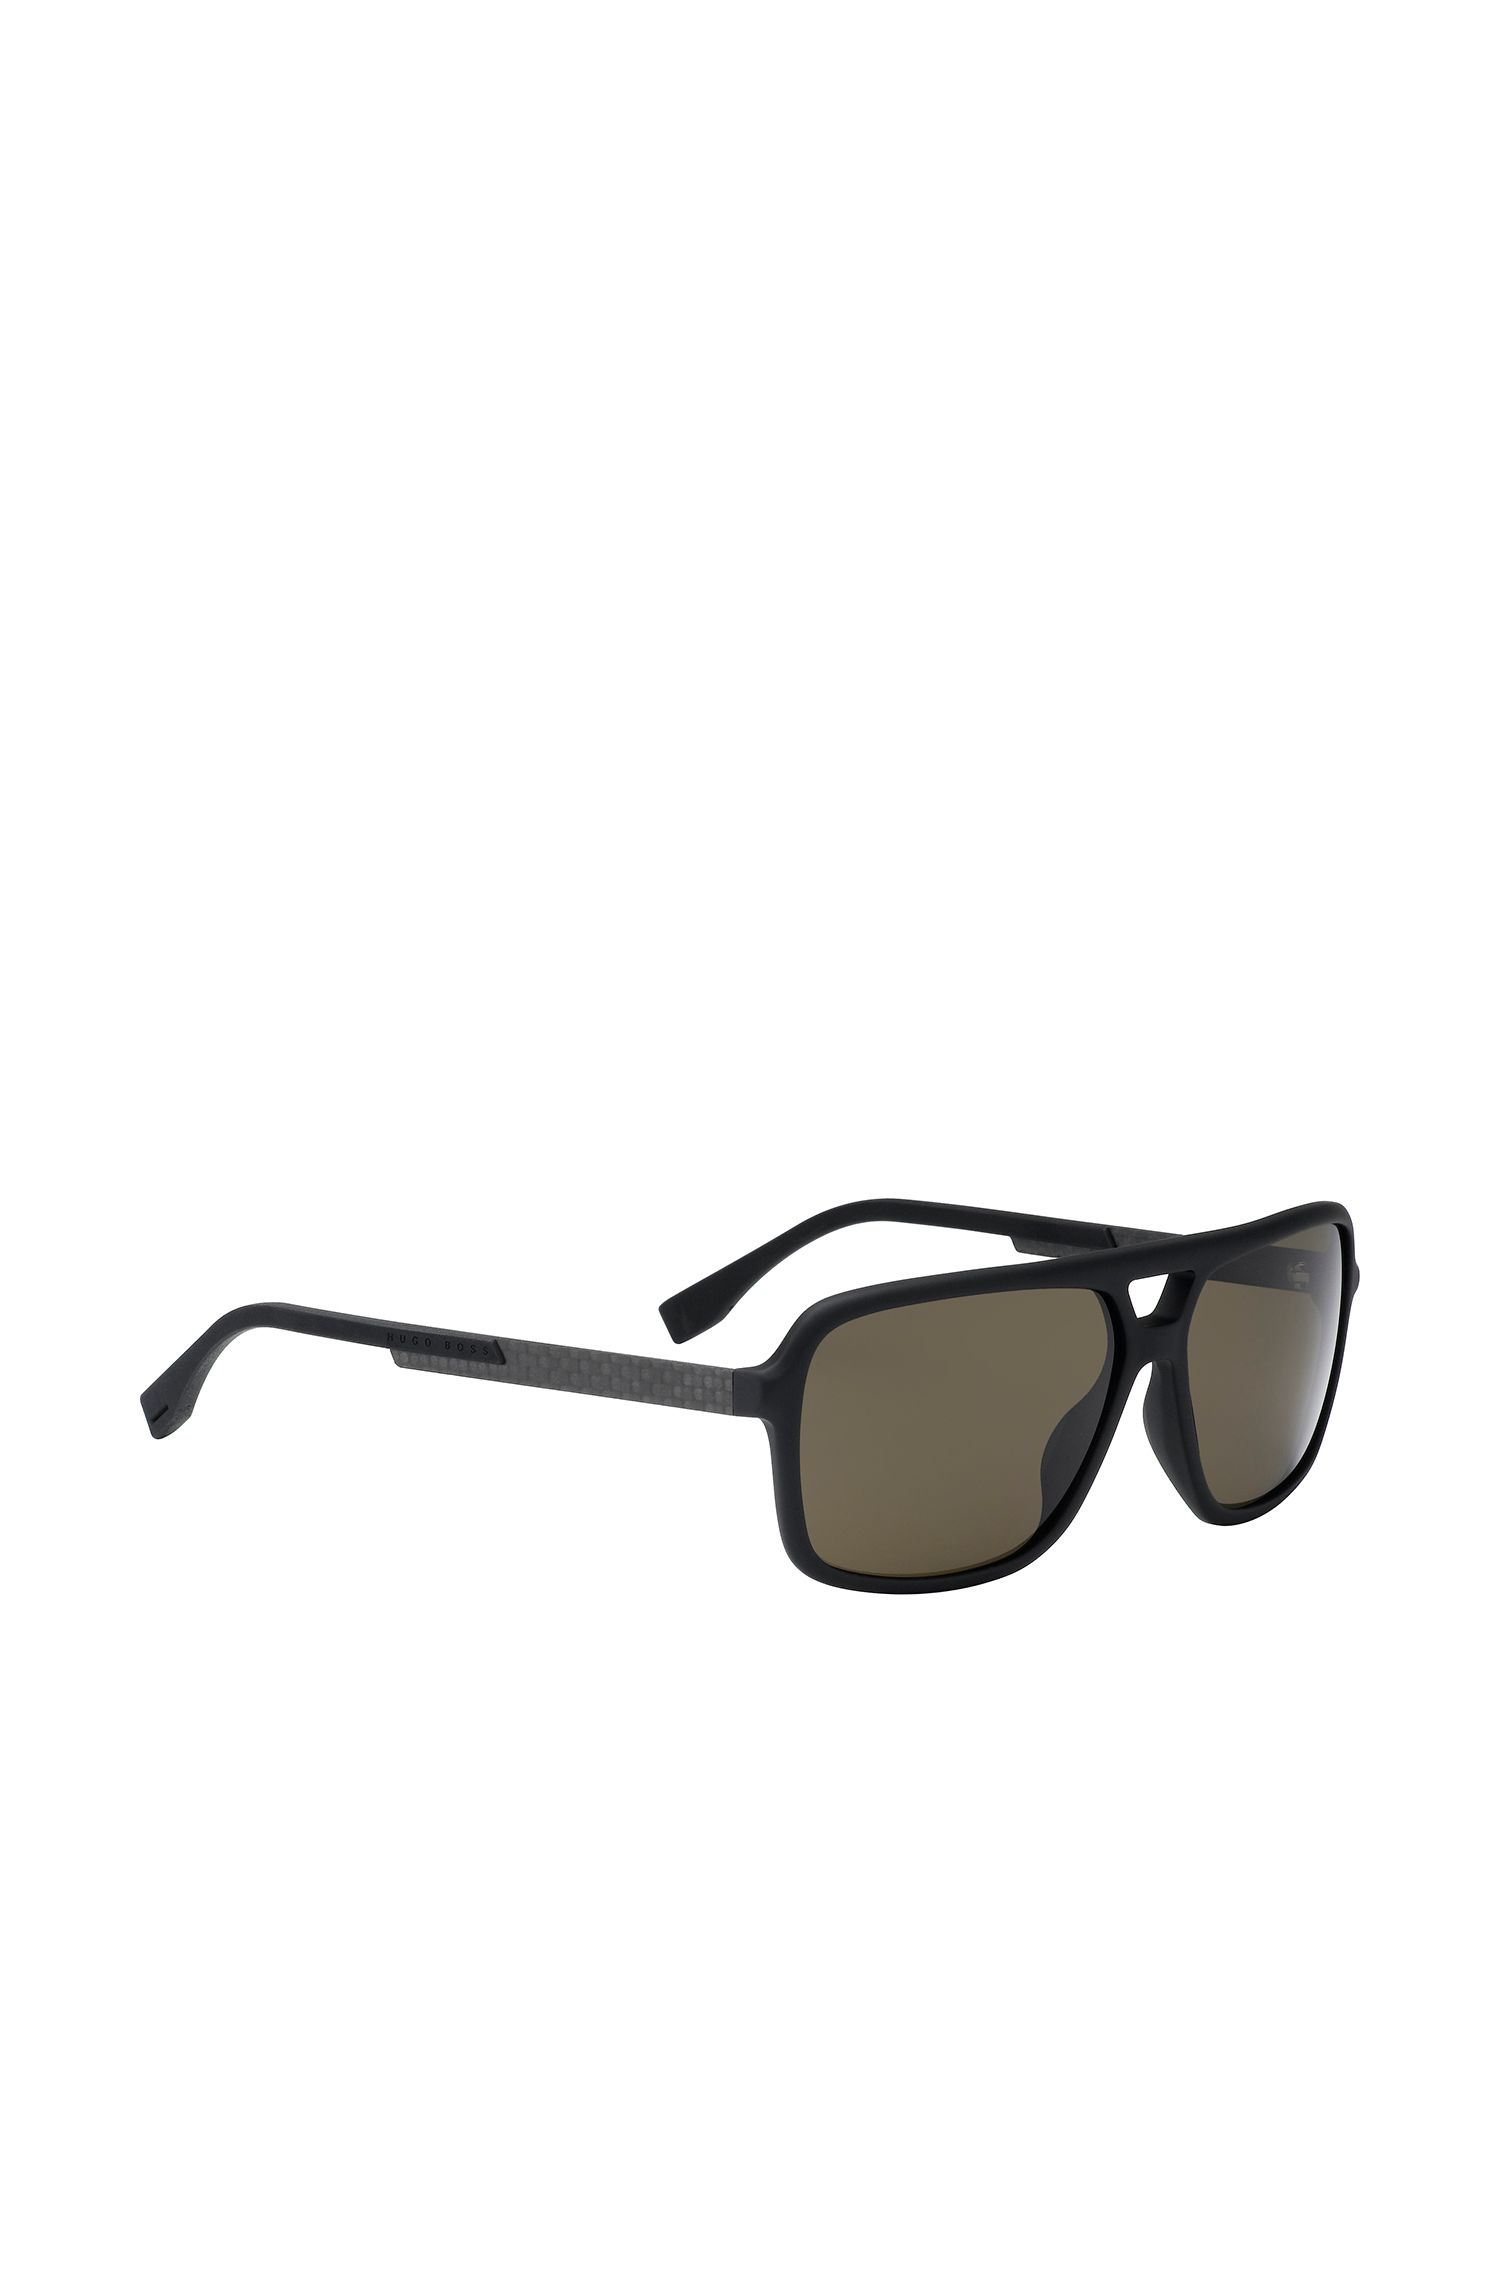 'BOSS 0772S'| Brown Grey Lens Navigator Sunglasses